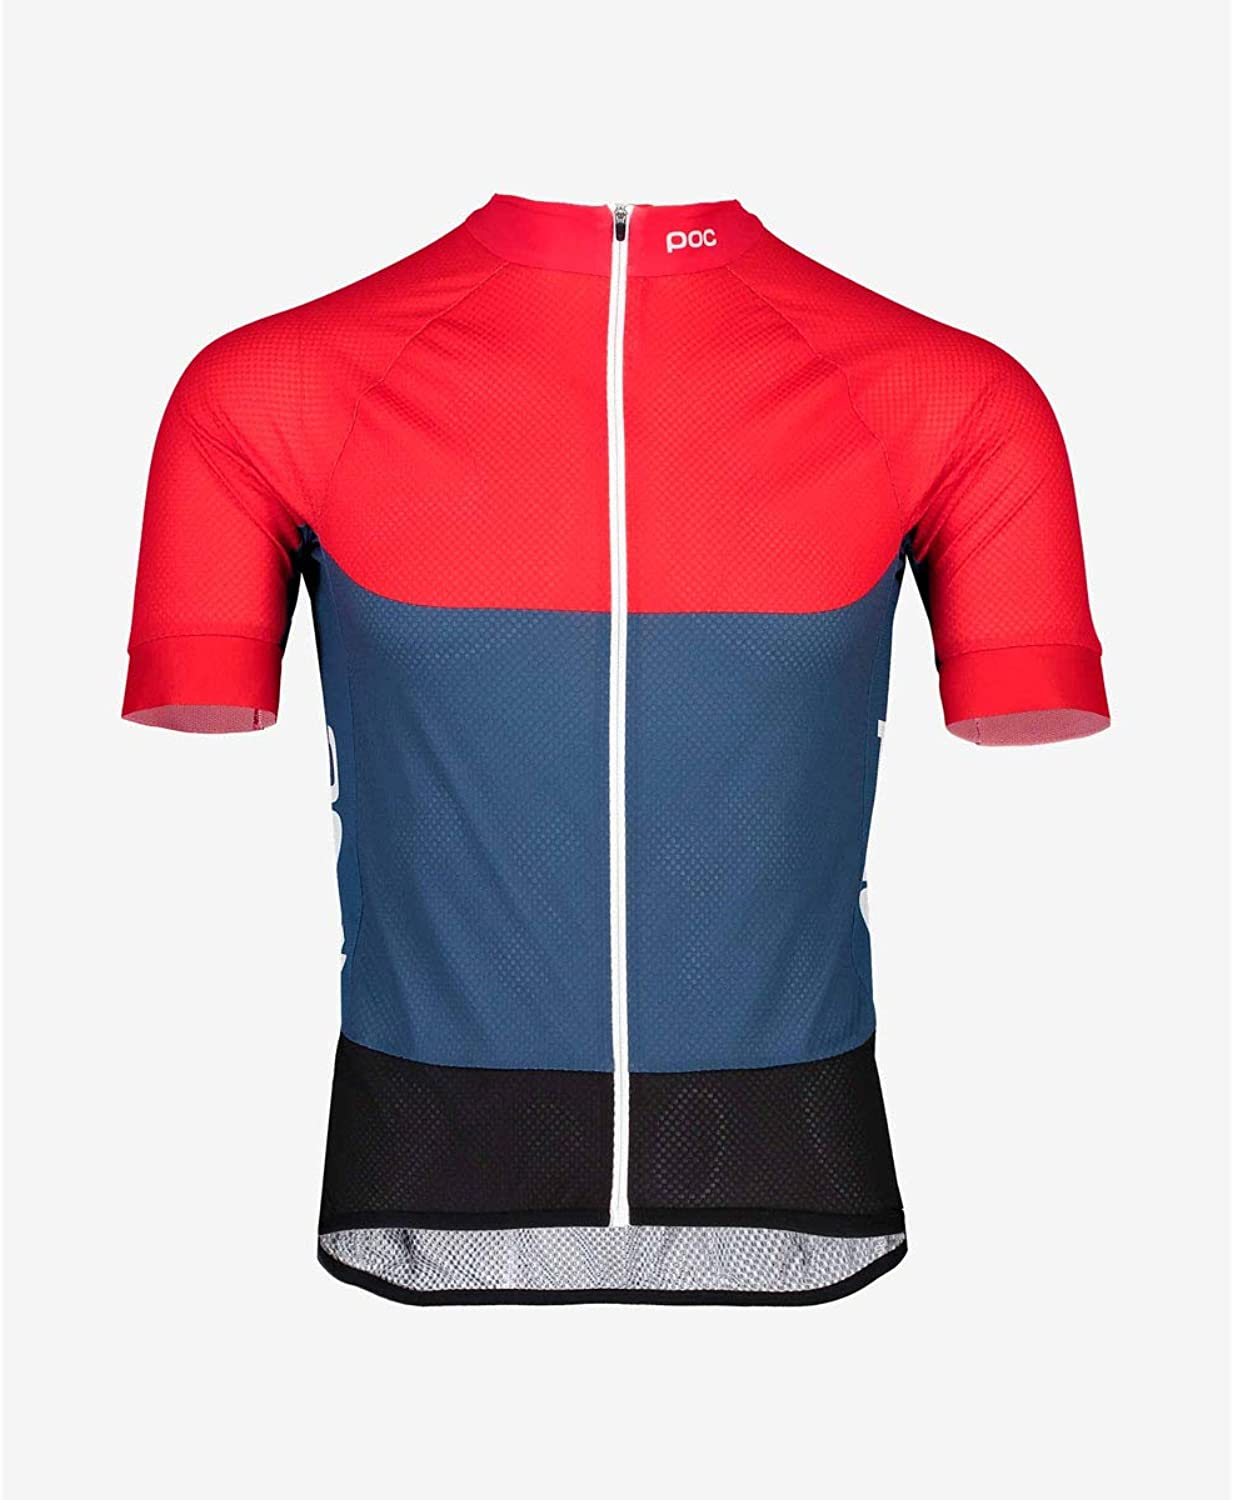 POC Essential Road Bike Jersey Shortsleeve Men red bluee 2019 Short Sleeve Cycling Jersey